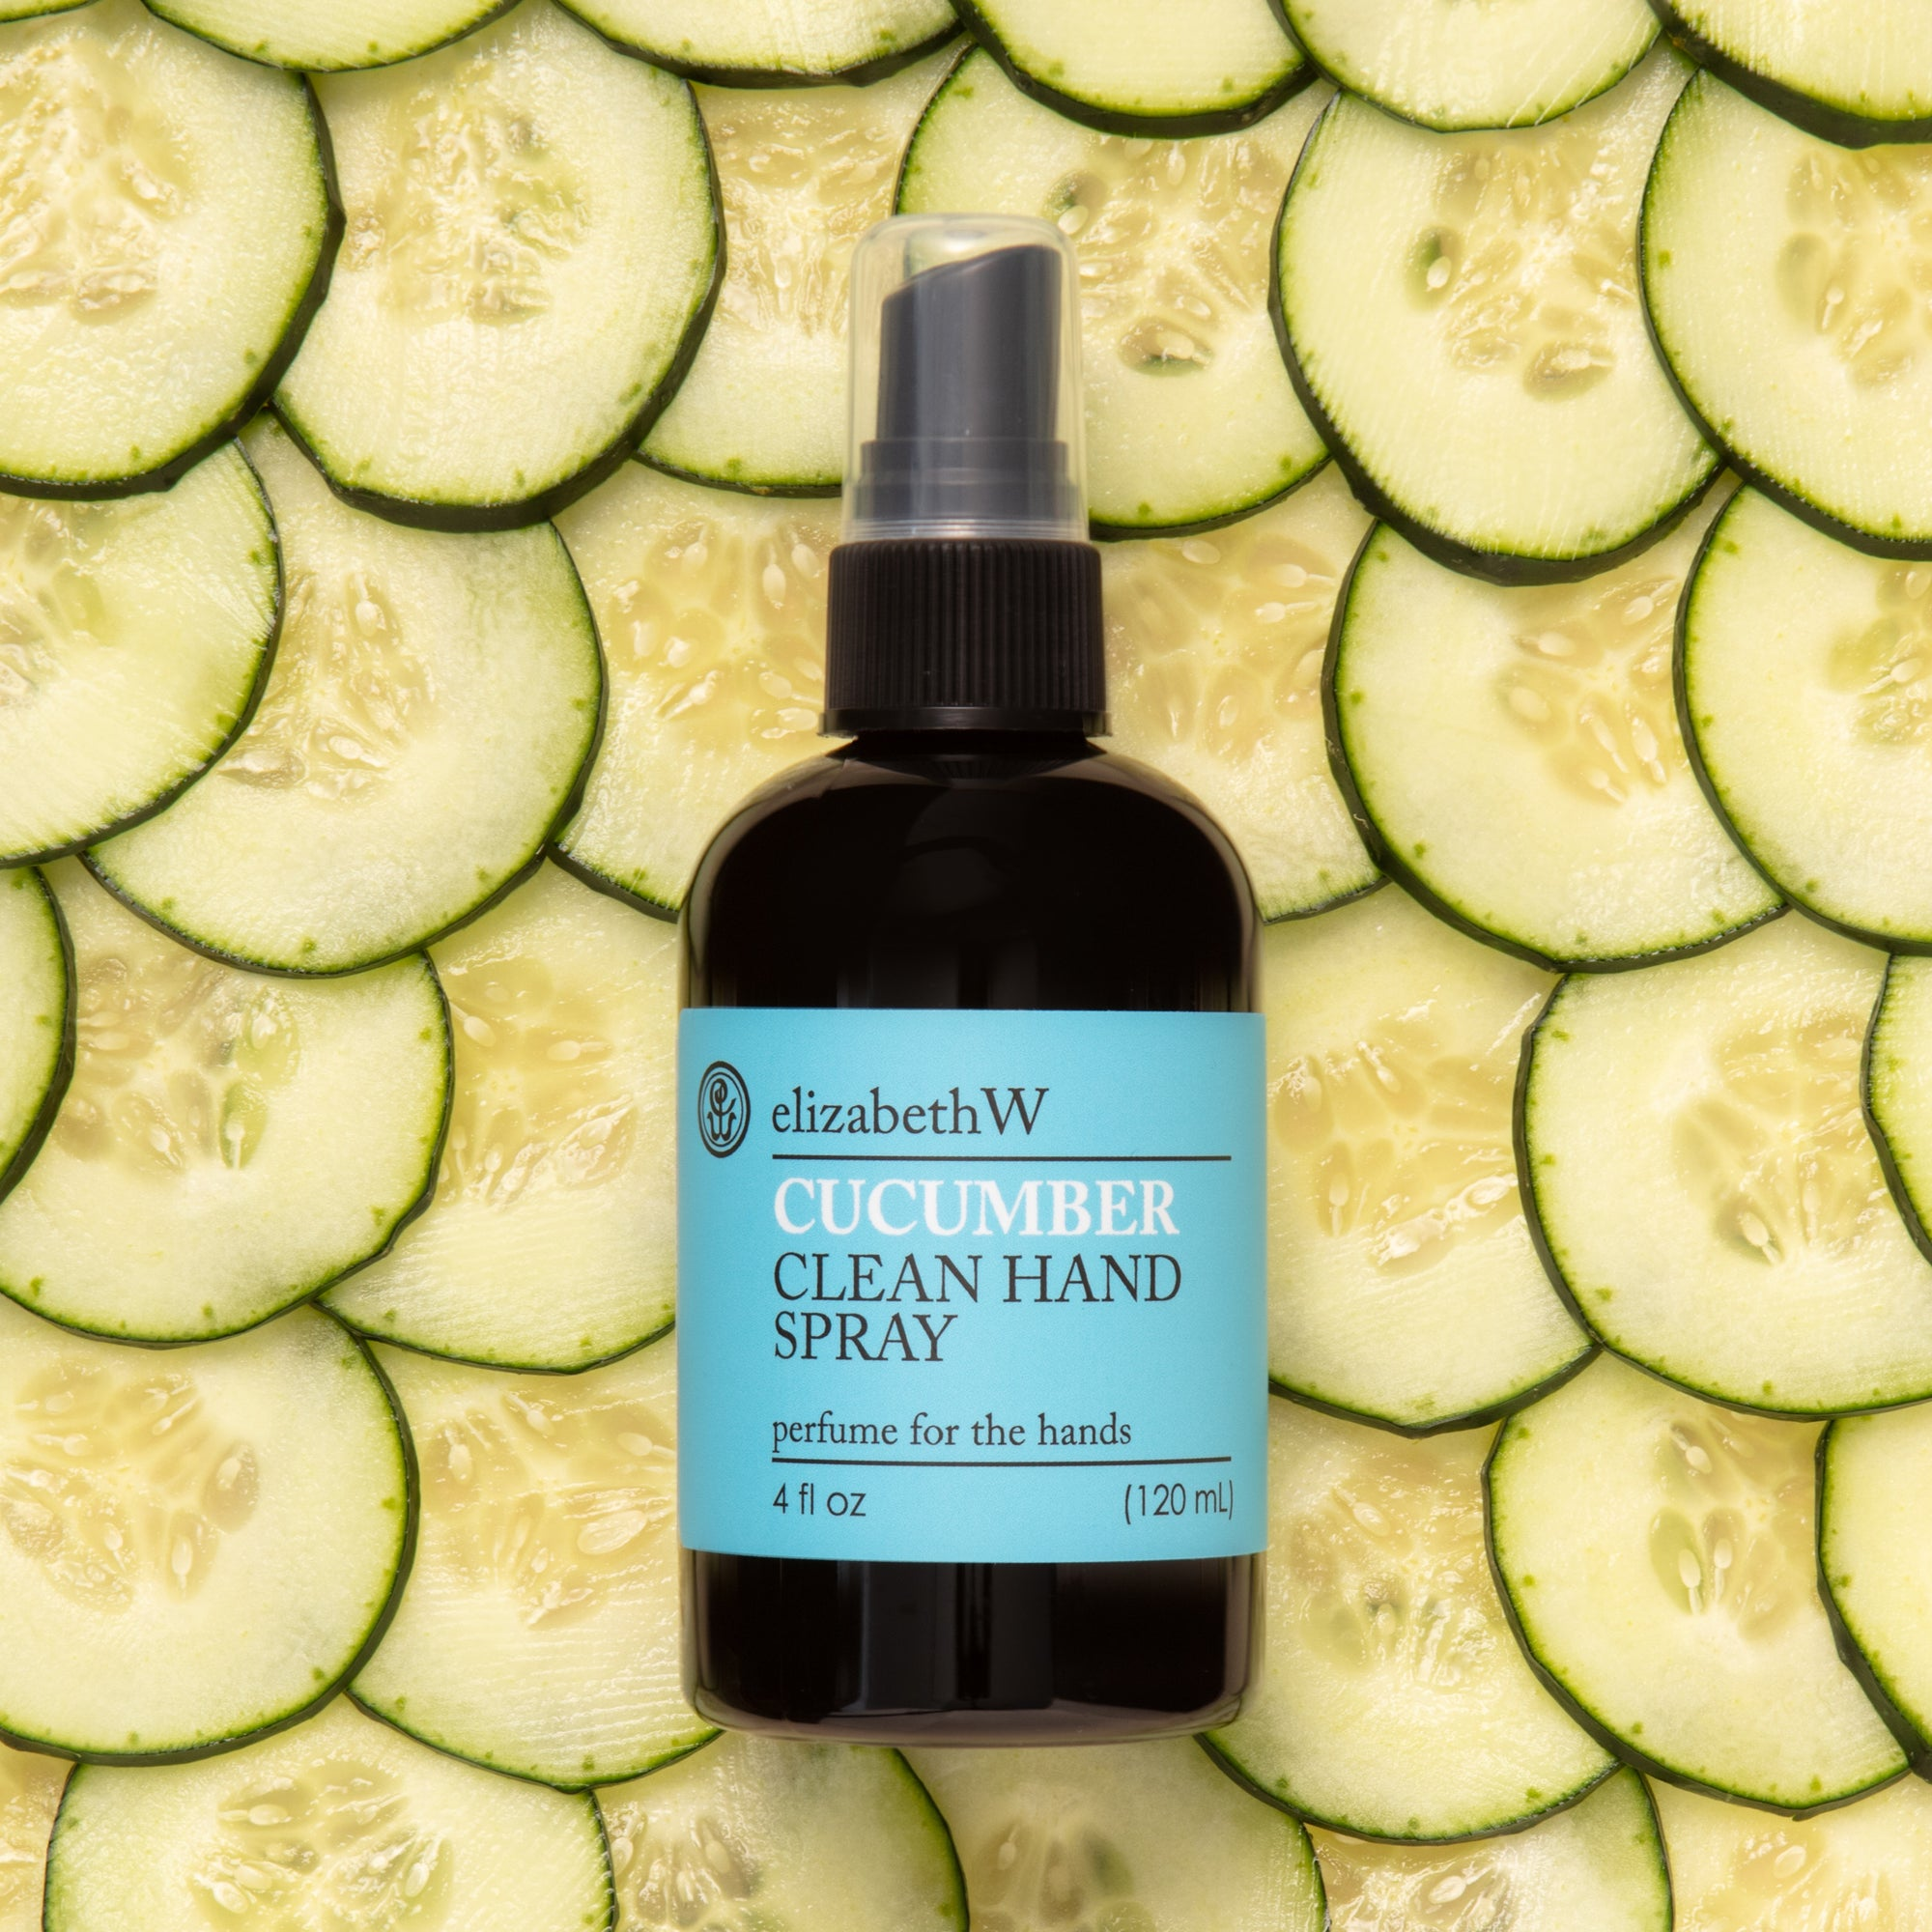 Cucumber Clean Hand Spray by elizabeth W